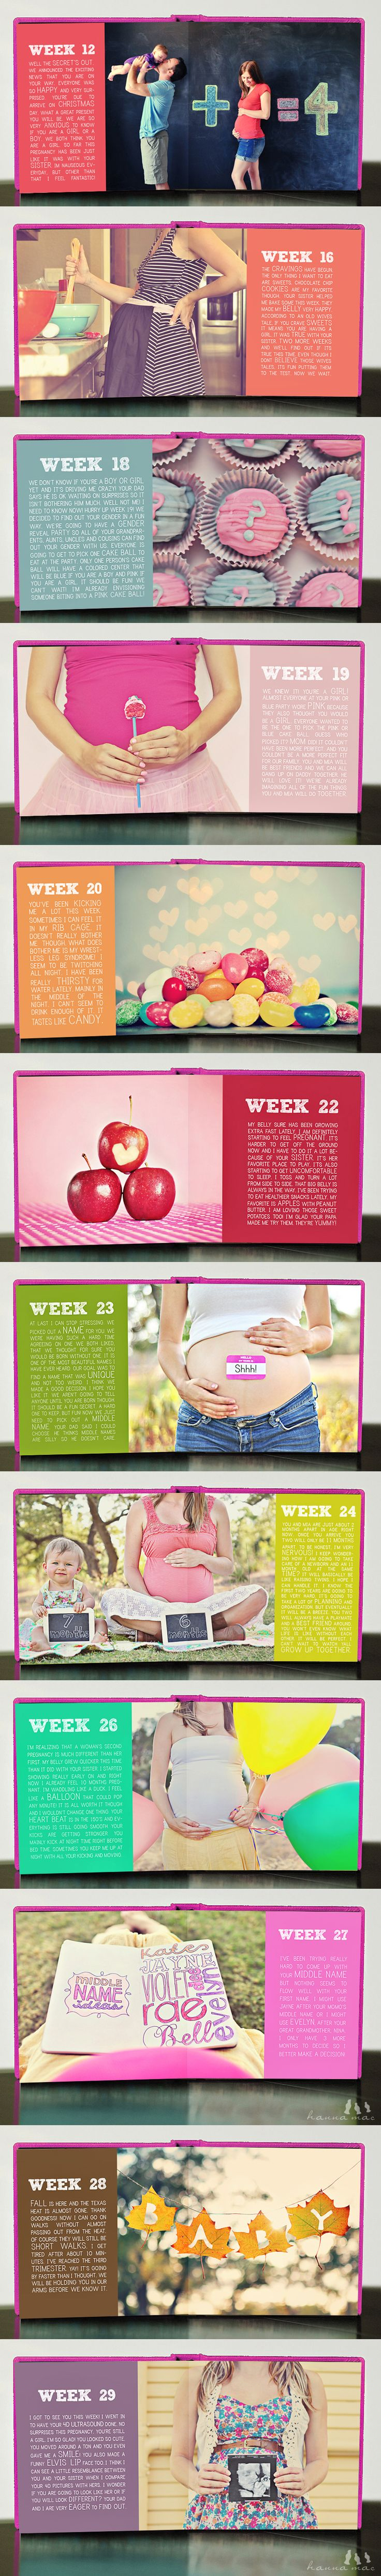 cutest little maternity book :)Photos Journals, Pregnancy Book Ideas, Mama Maternity, Maternity Book, Cute Ideas, Pregnancy Journals, Baby Books, Photos Book, Baby Photos